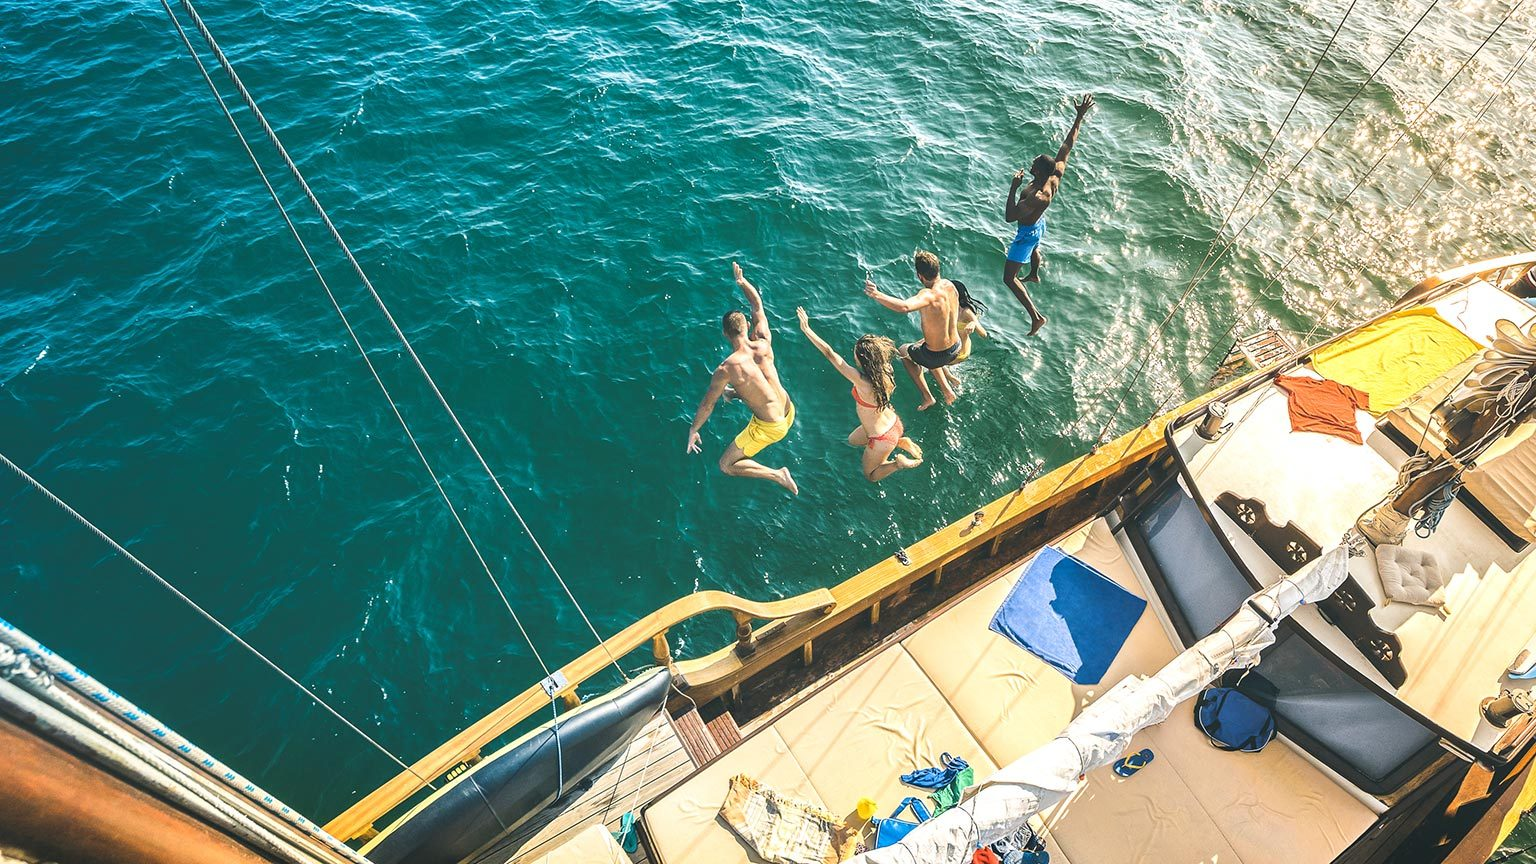 Group jumping off cruise desk into water